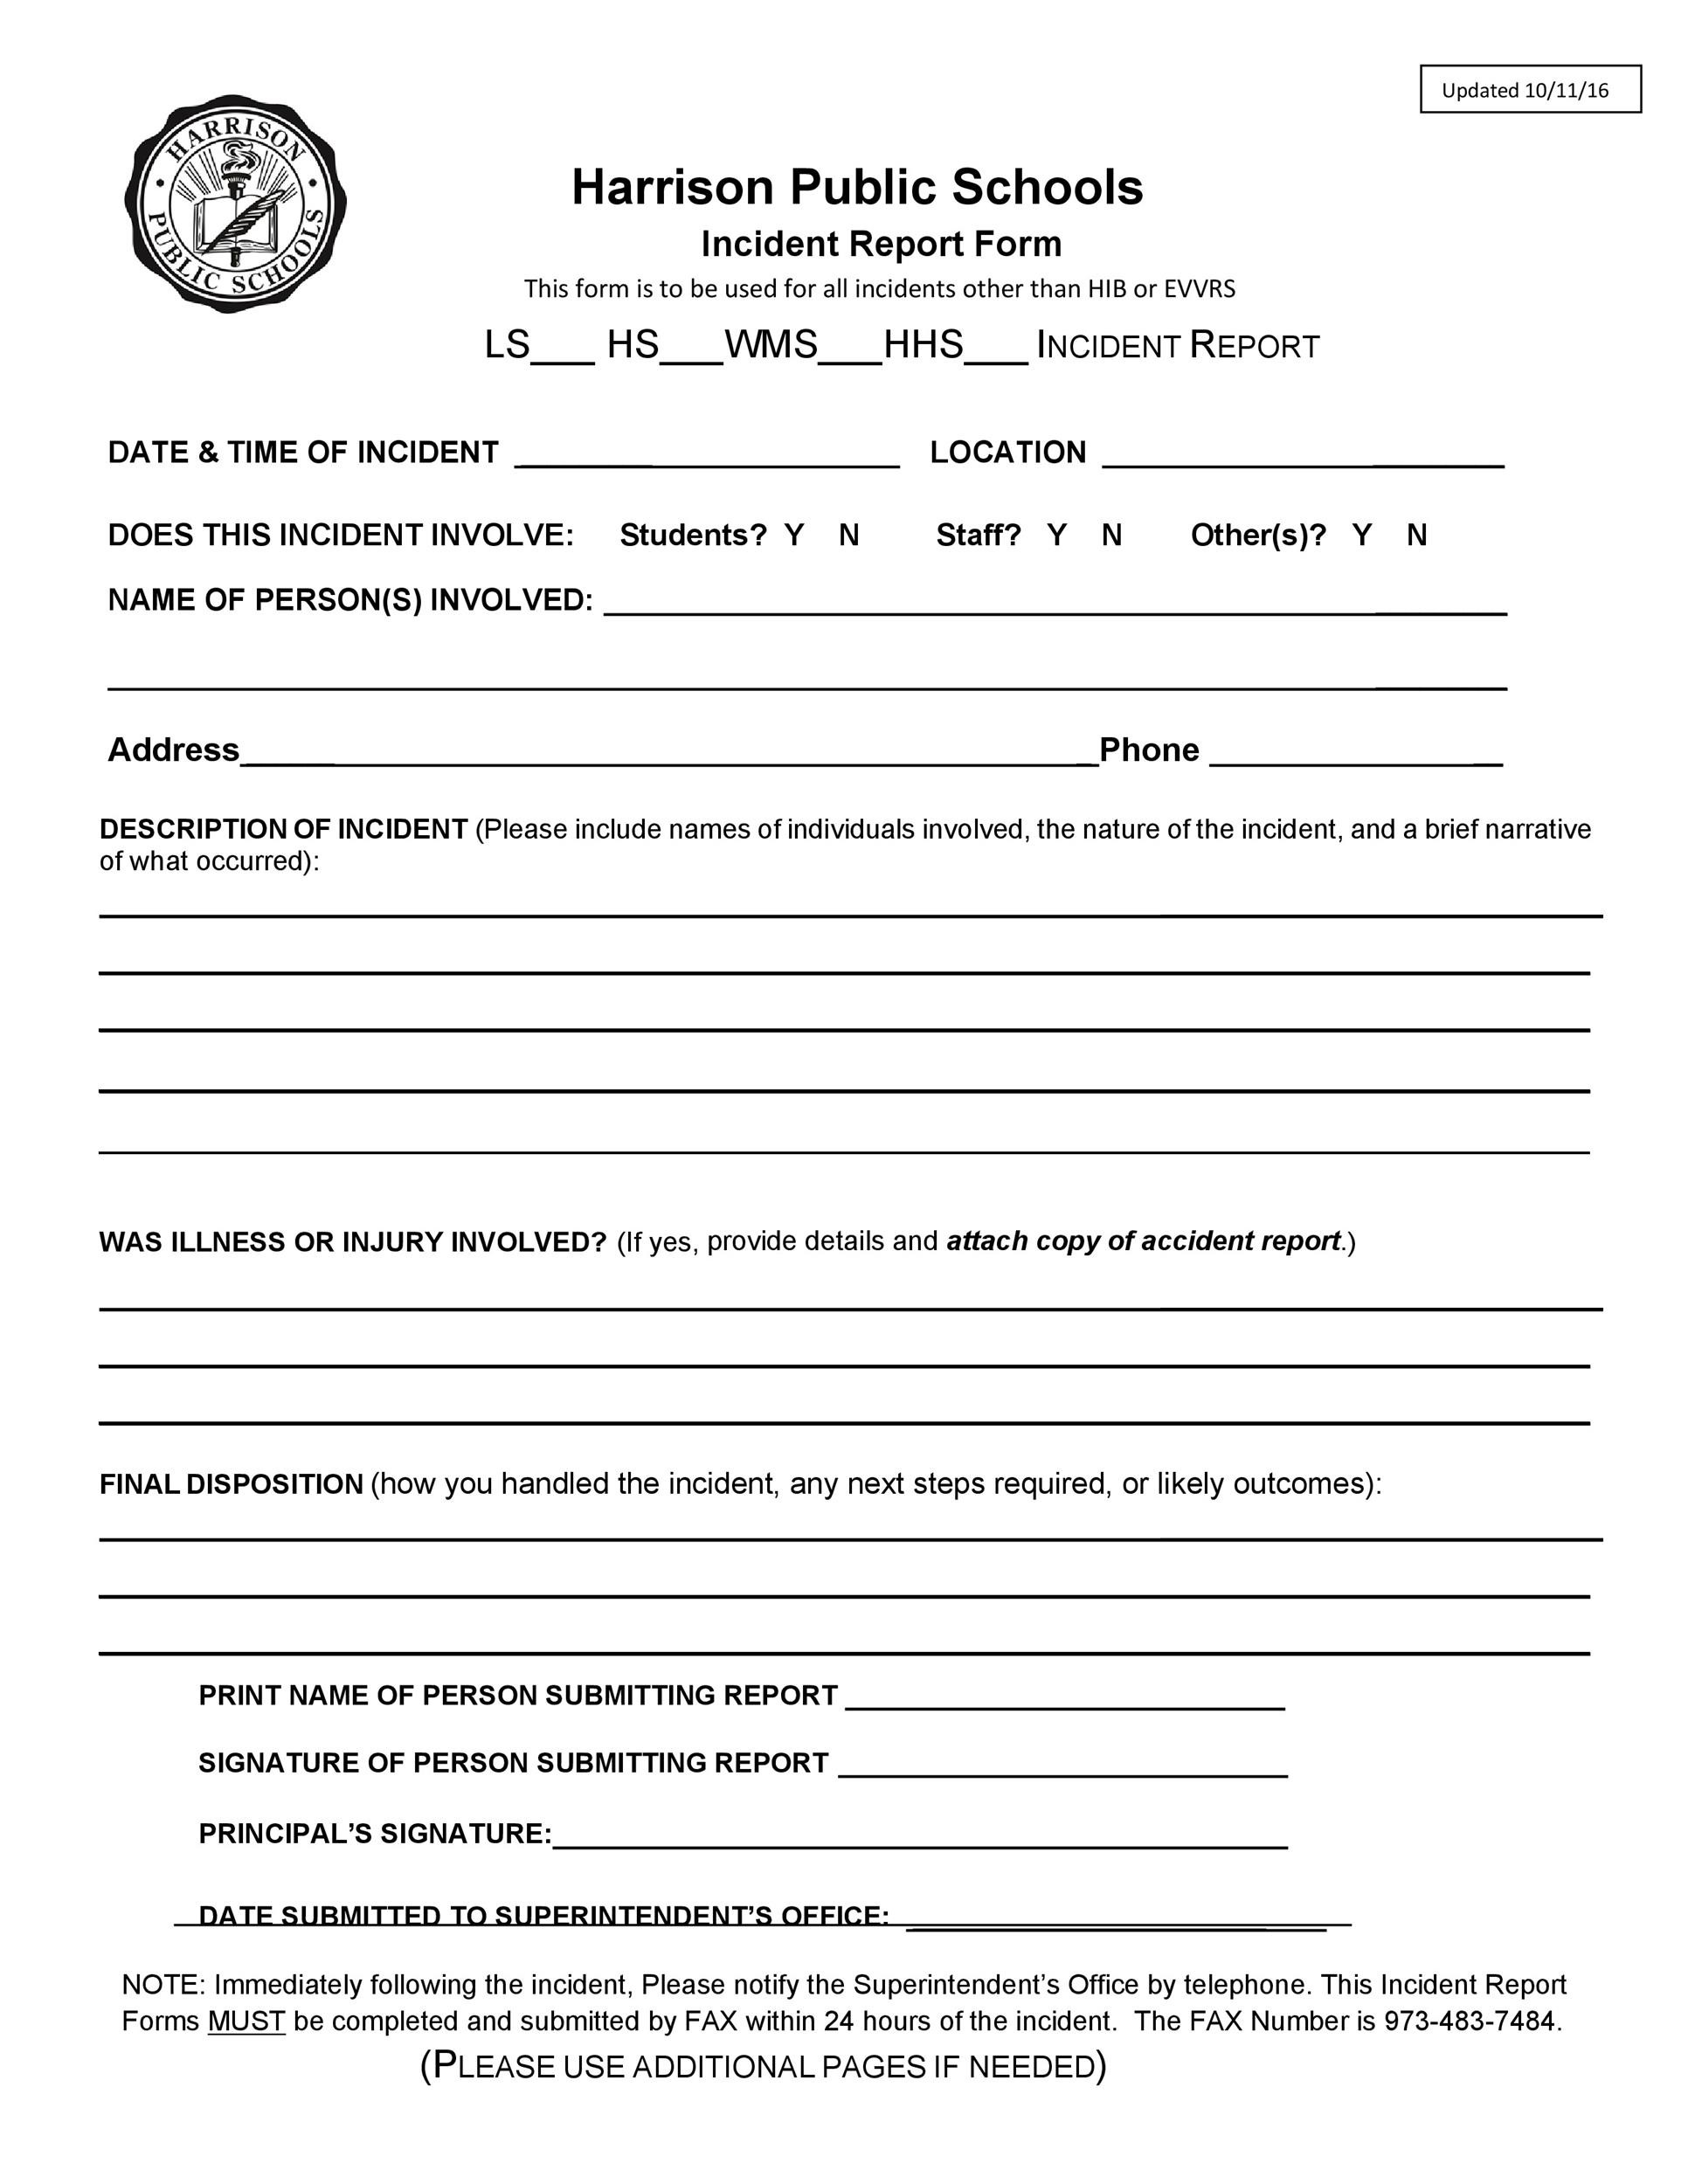 Free Incident Report Template 24